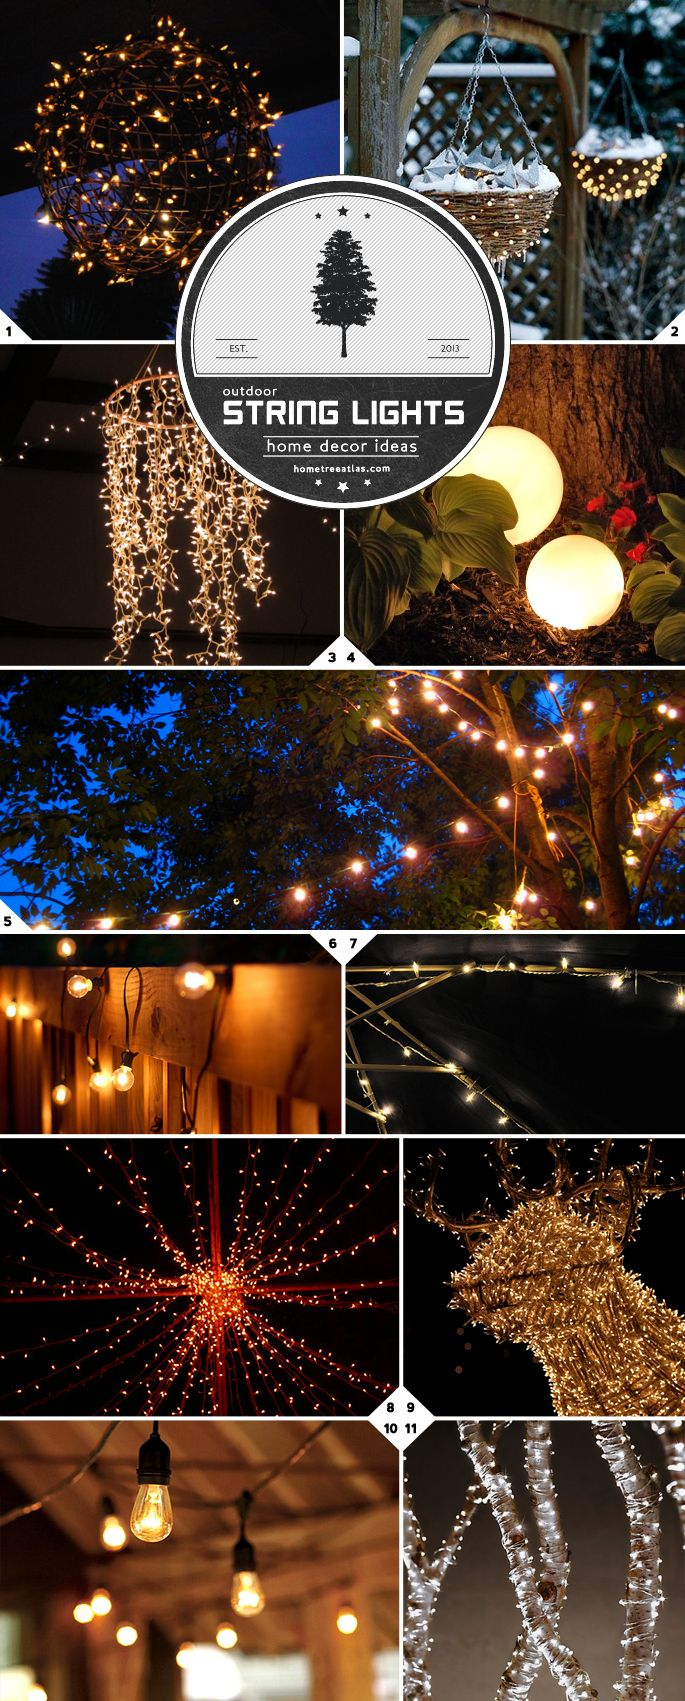 home decor ideas creative ways of using string lights outdoors